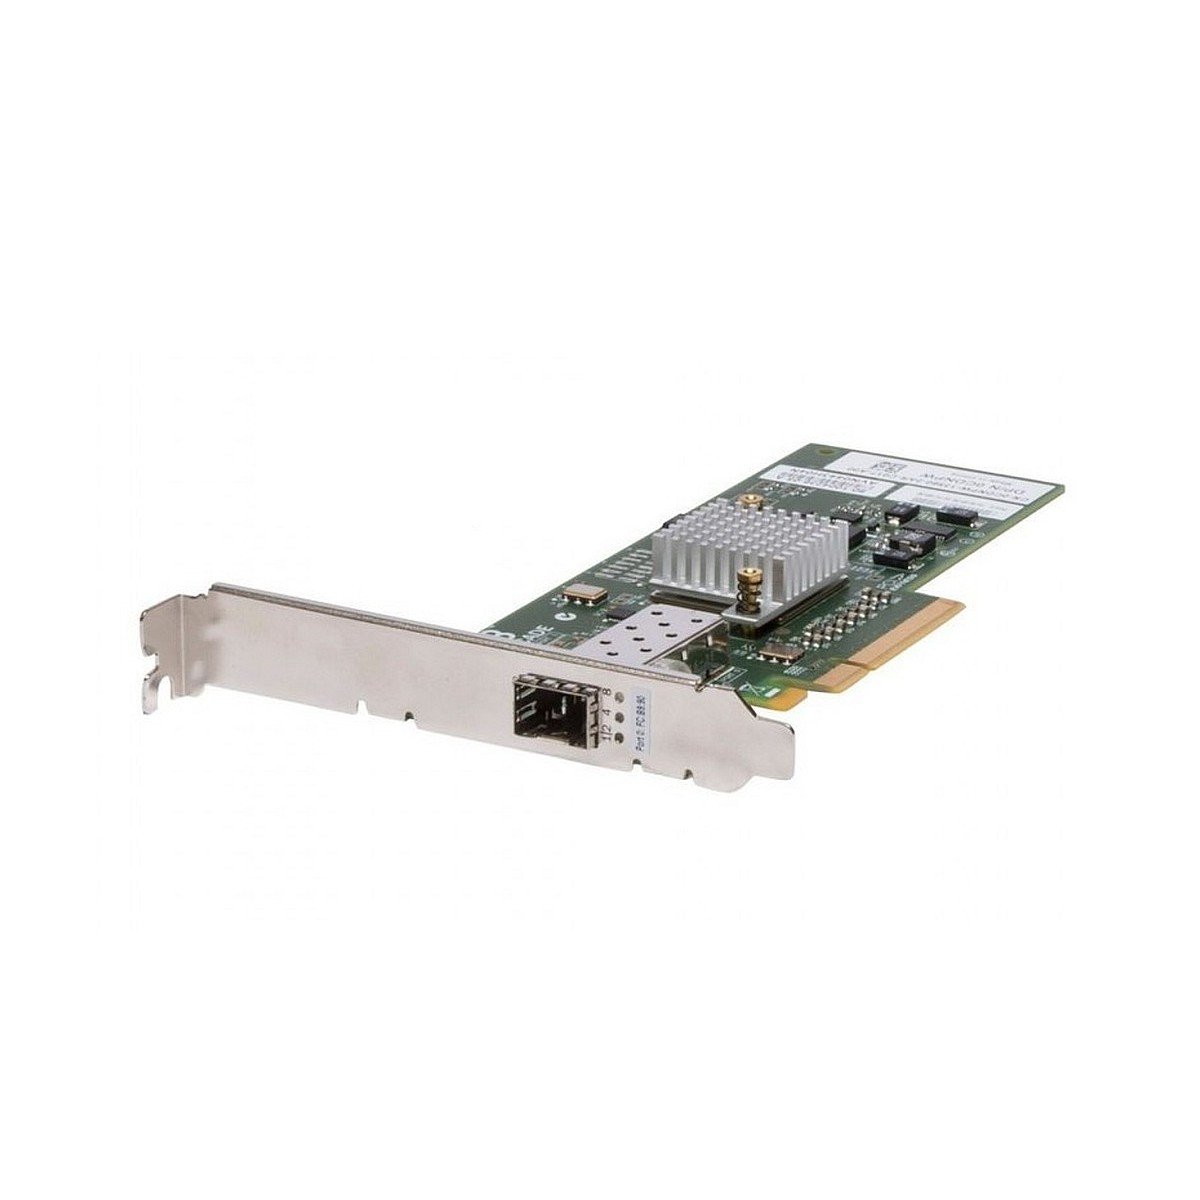 HP LSI SAS 9207-8e H22 LOW 638836-001